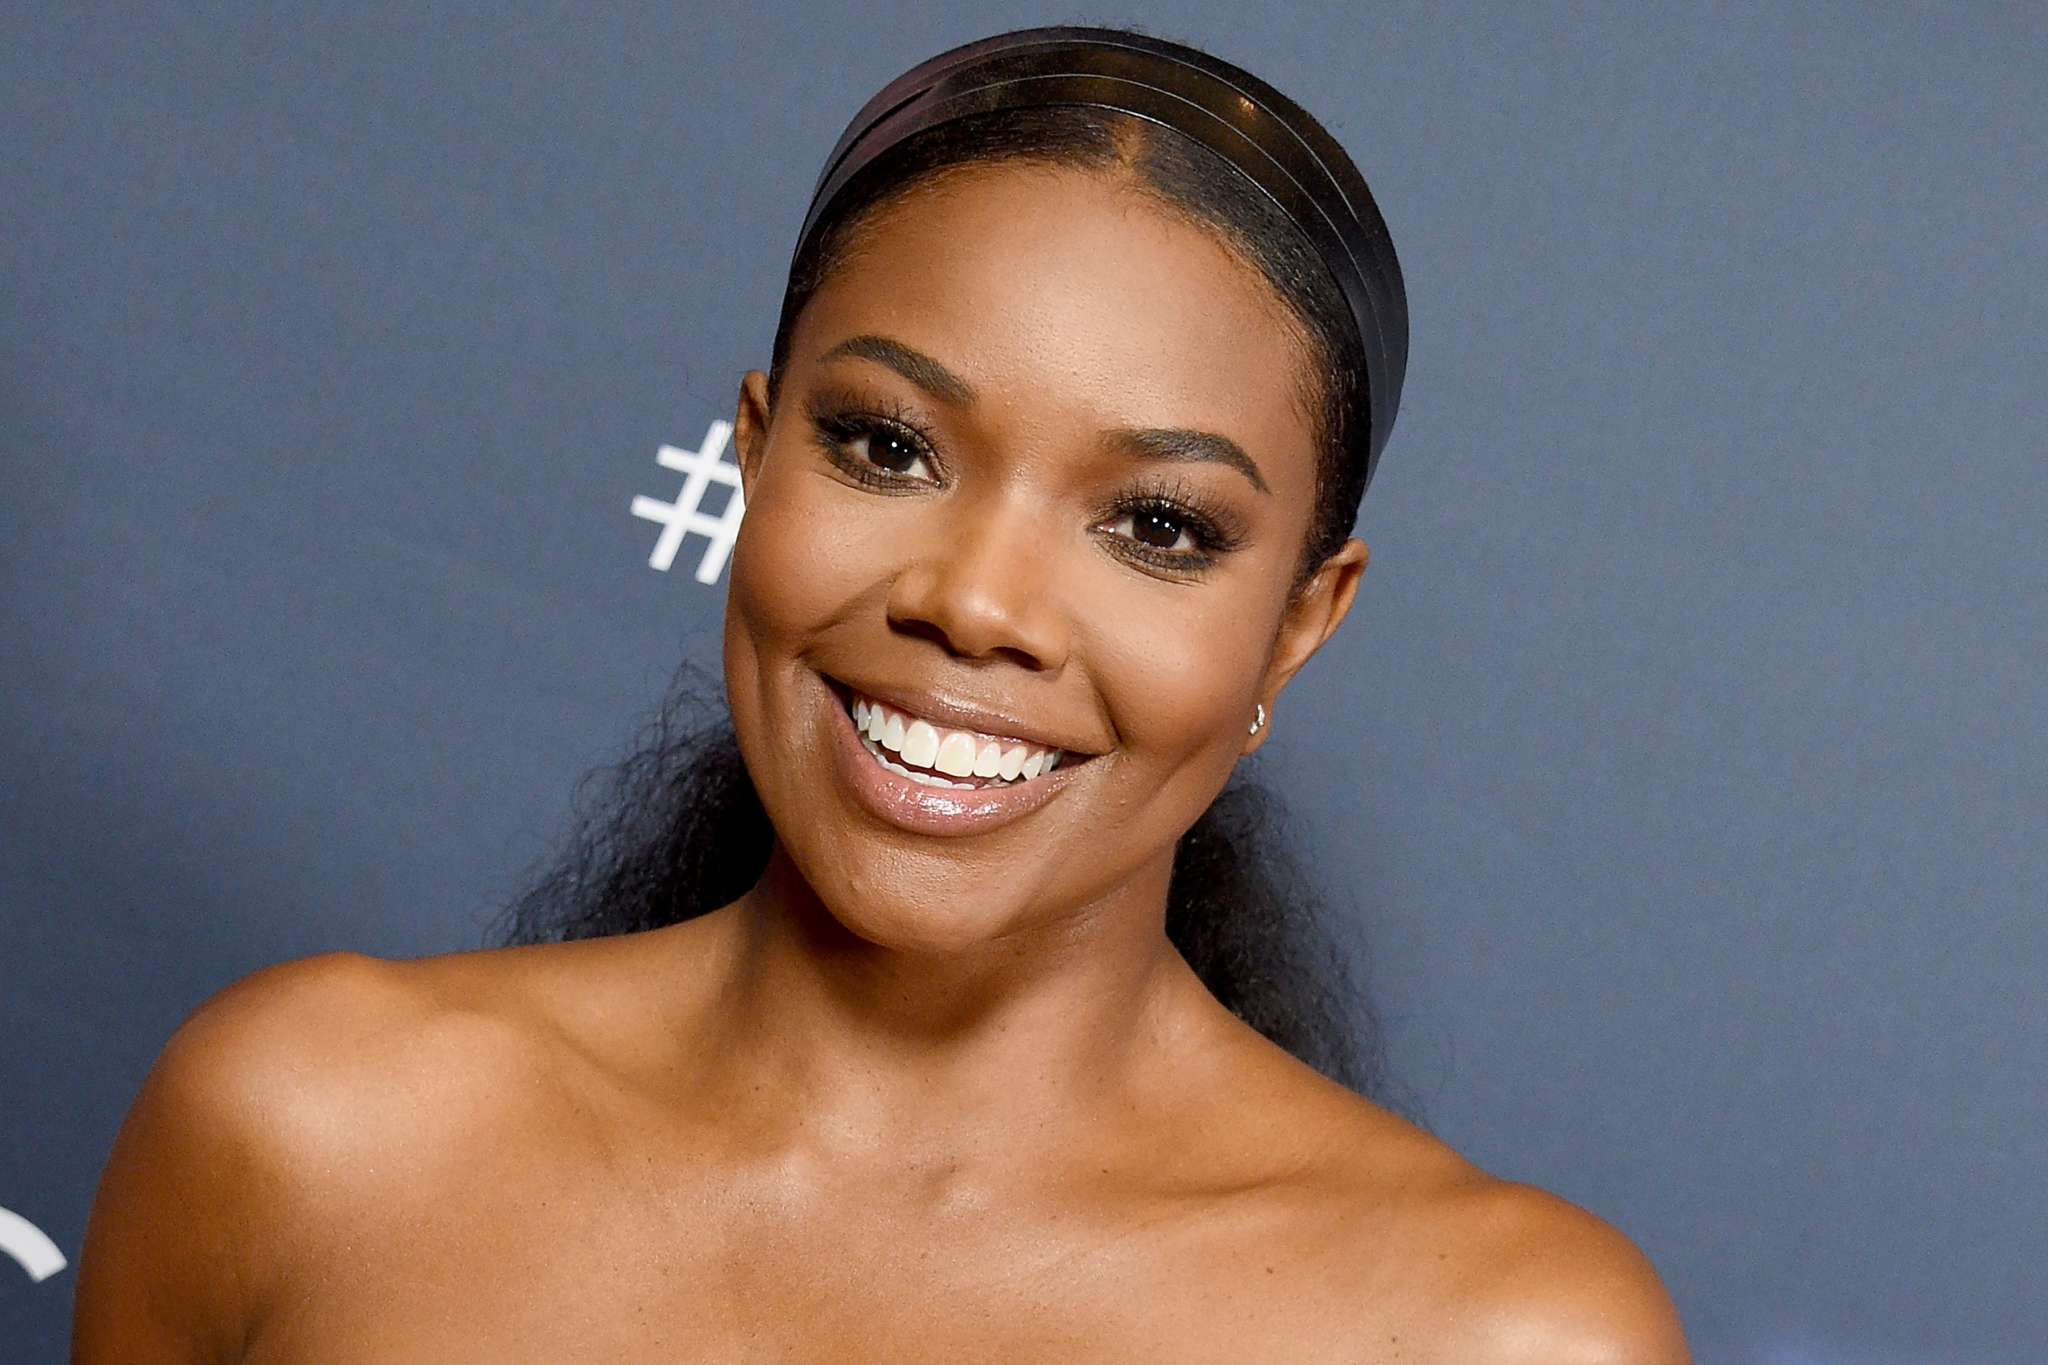 gabrielle-union-looks-divine-at-the-beach-check-out-her-other-worldly-dress